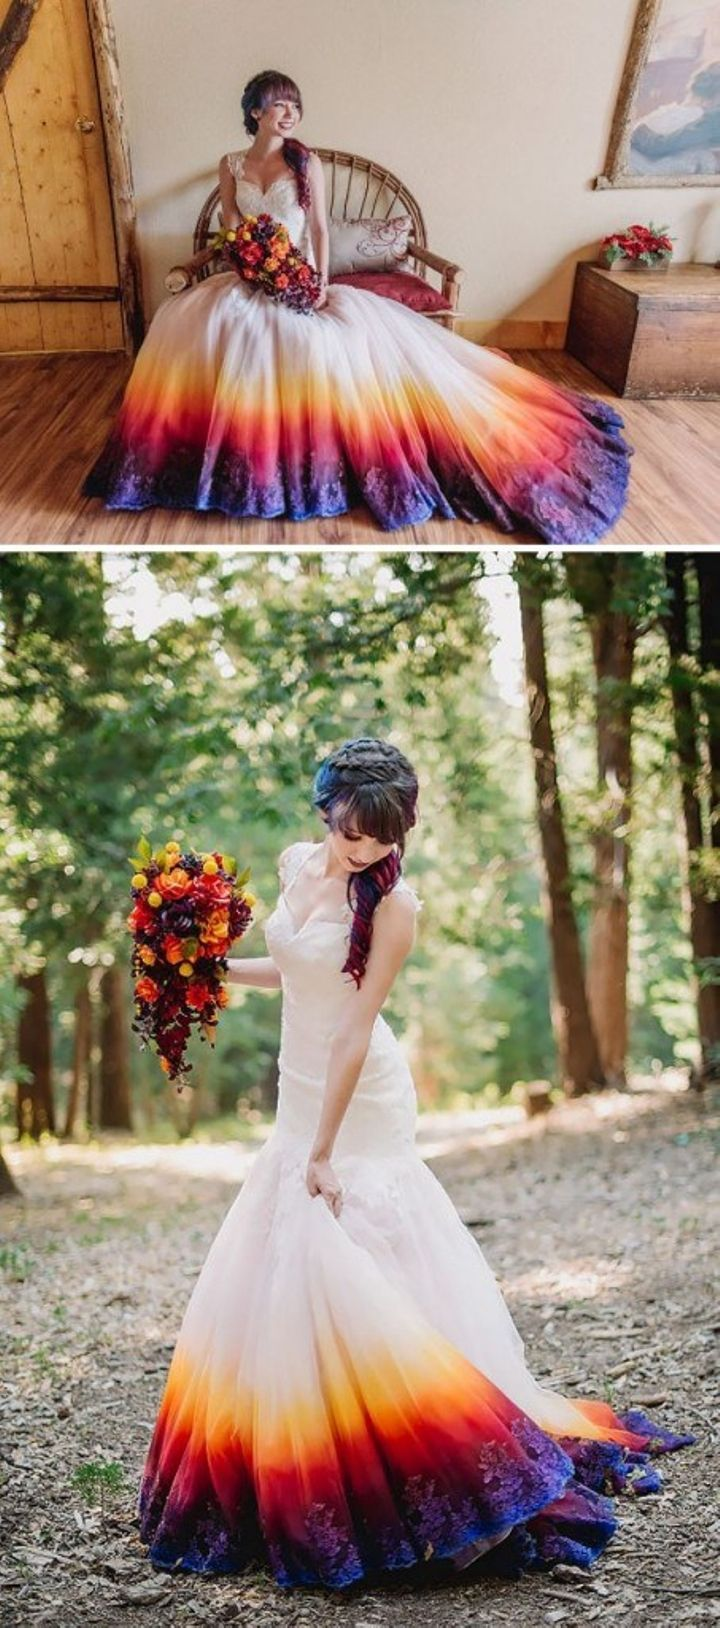 These Dip Dyed Bridal Gowns Are A Fun New Wedding Trend People Going Nuts For Distractify